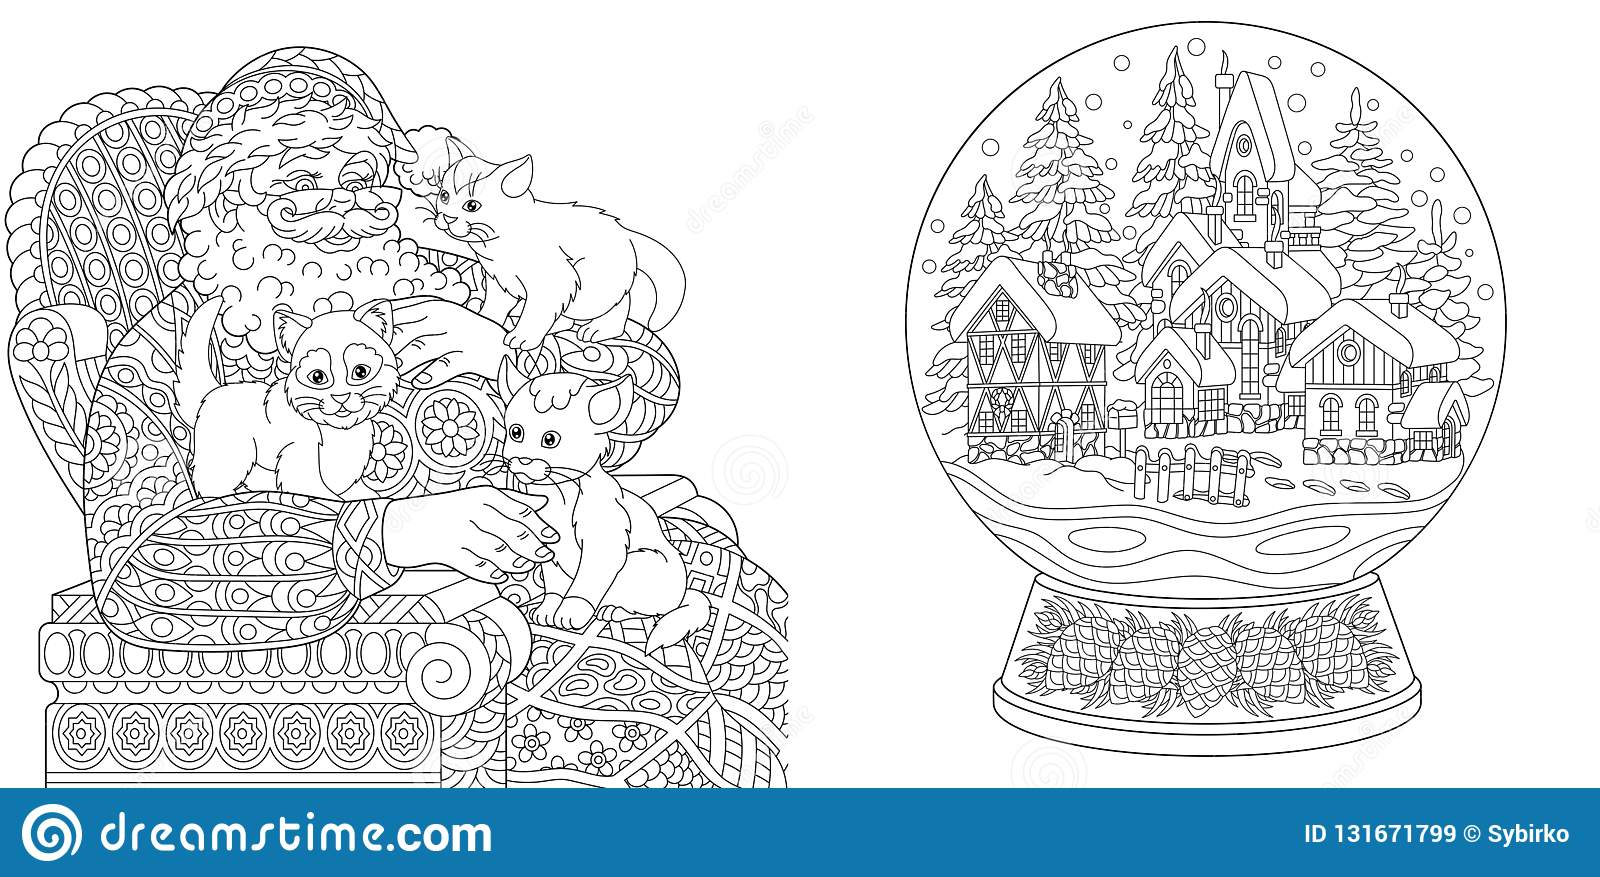 Coloring Pages Coloring Book For Adults Colouring